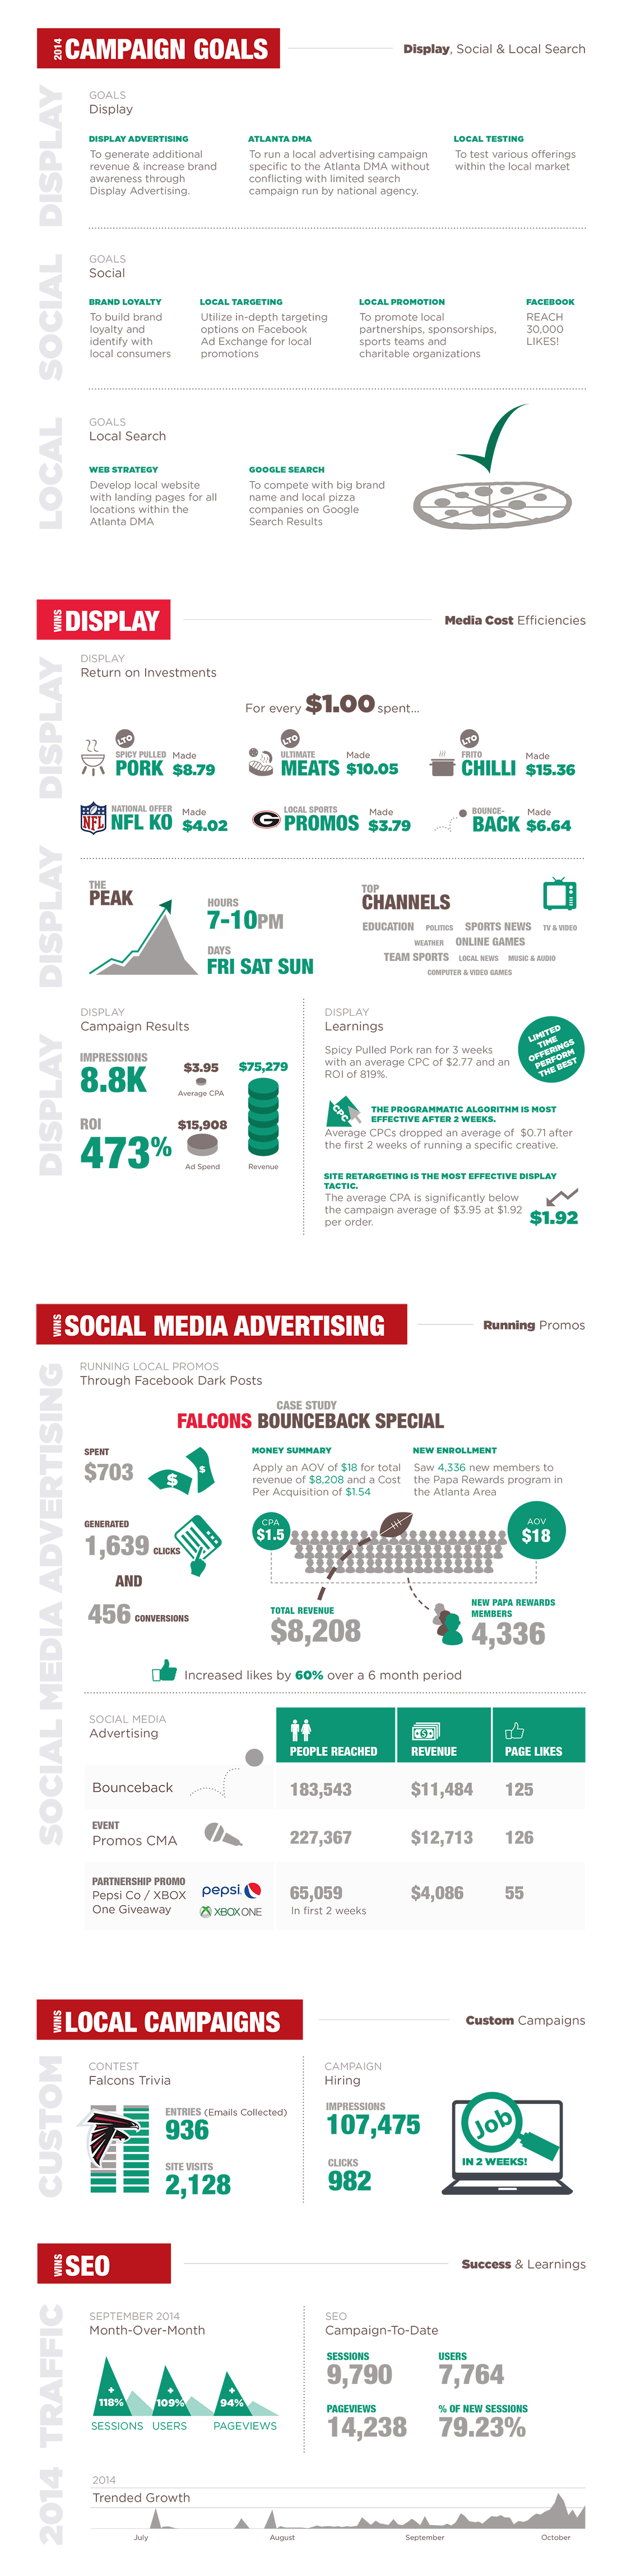 papa-johns-infographic-combined